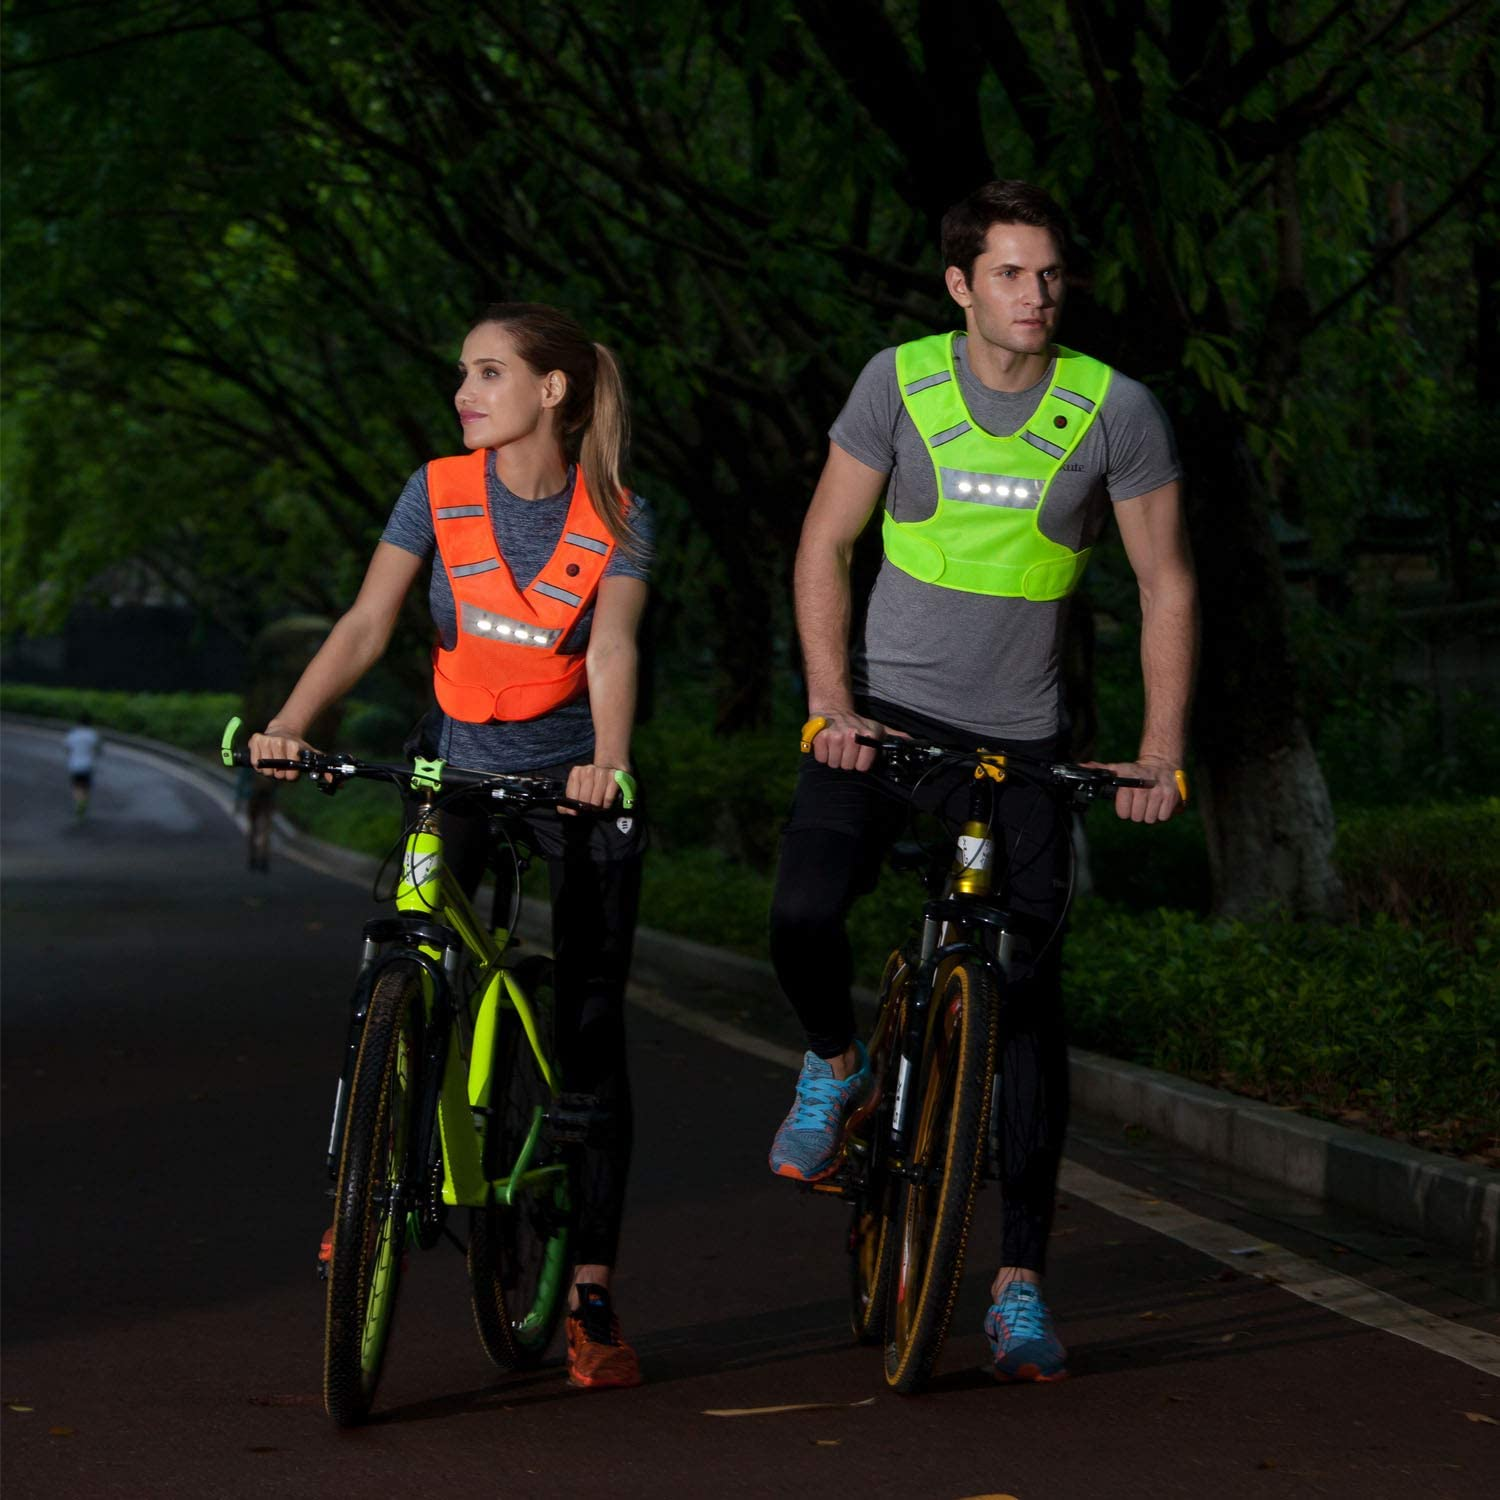 High Visibility Light Up Flashing Vest Gifts for Men Women Kids Dog Walking AMNQUERXUS Machine Washable Reflective Running Vest with LED Lights USB Rechargeable Safety Gear with Adjustable Waist